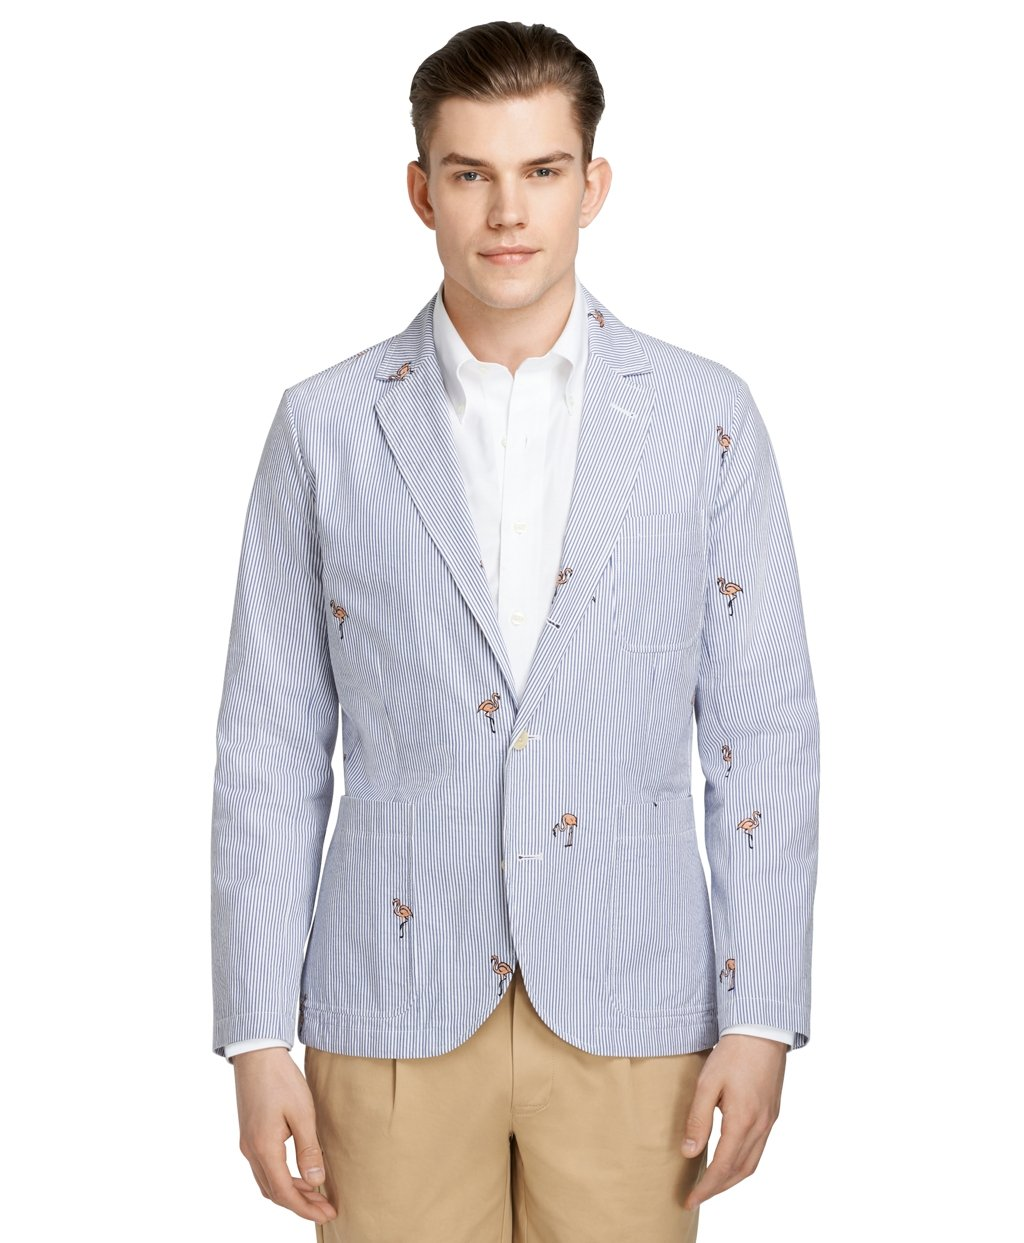 lyst brooks brothers seersucker flamingo jacket in blue for men. Black Bedroom Furniture Sets. Home Design Ideas